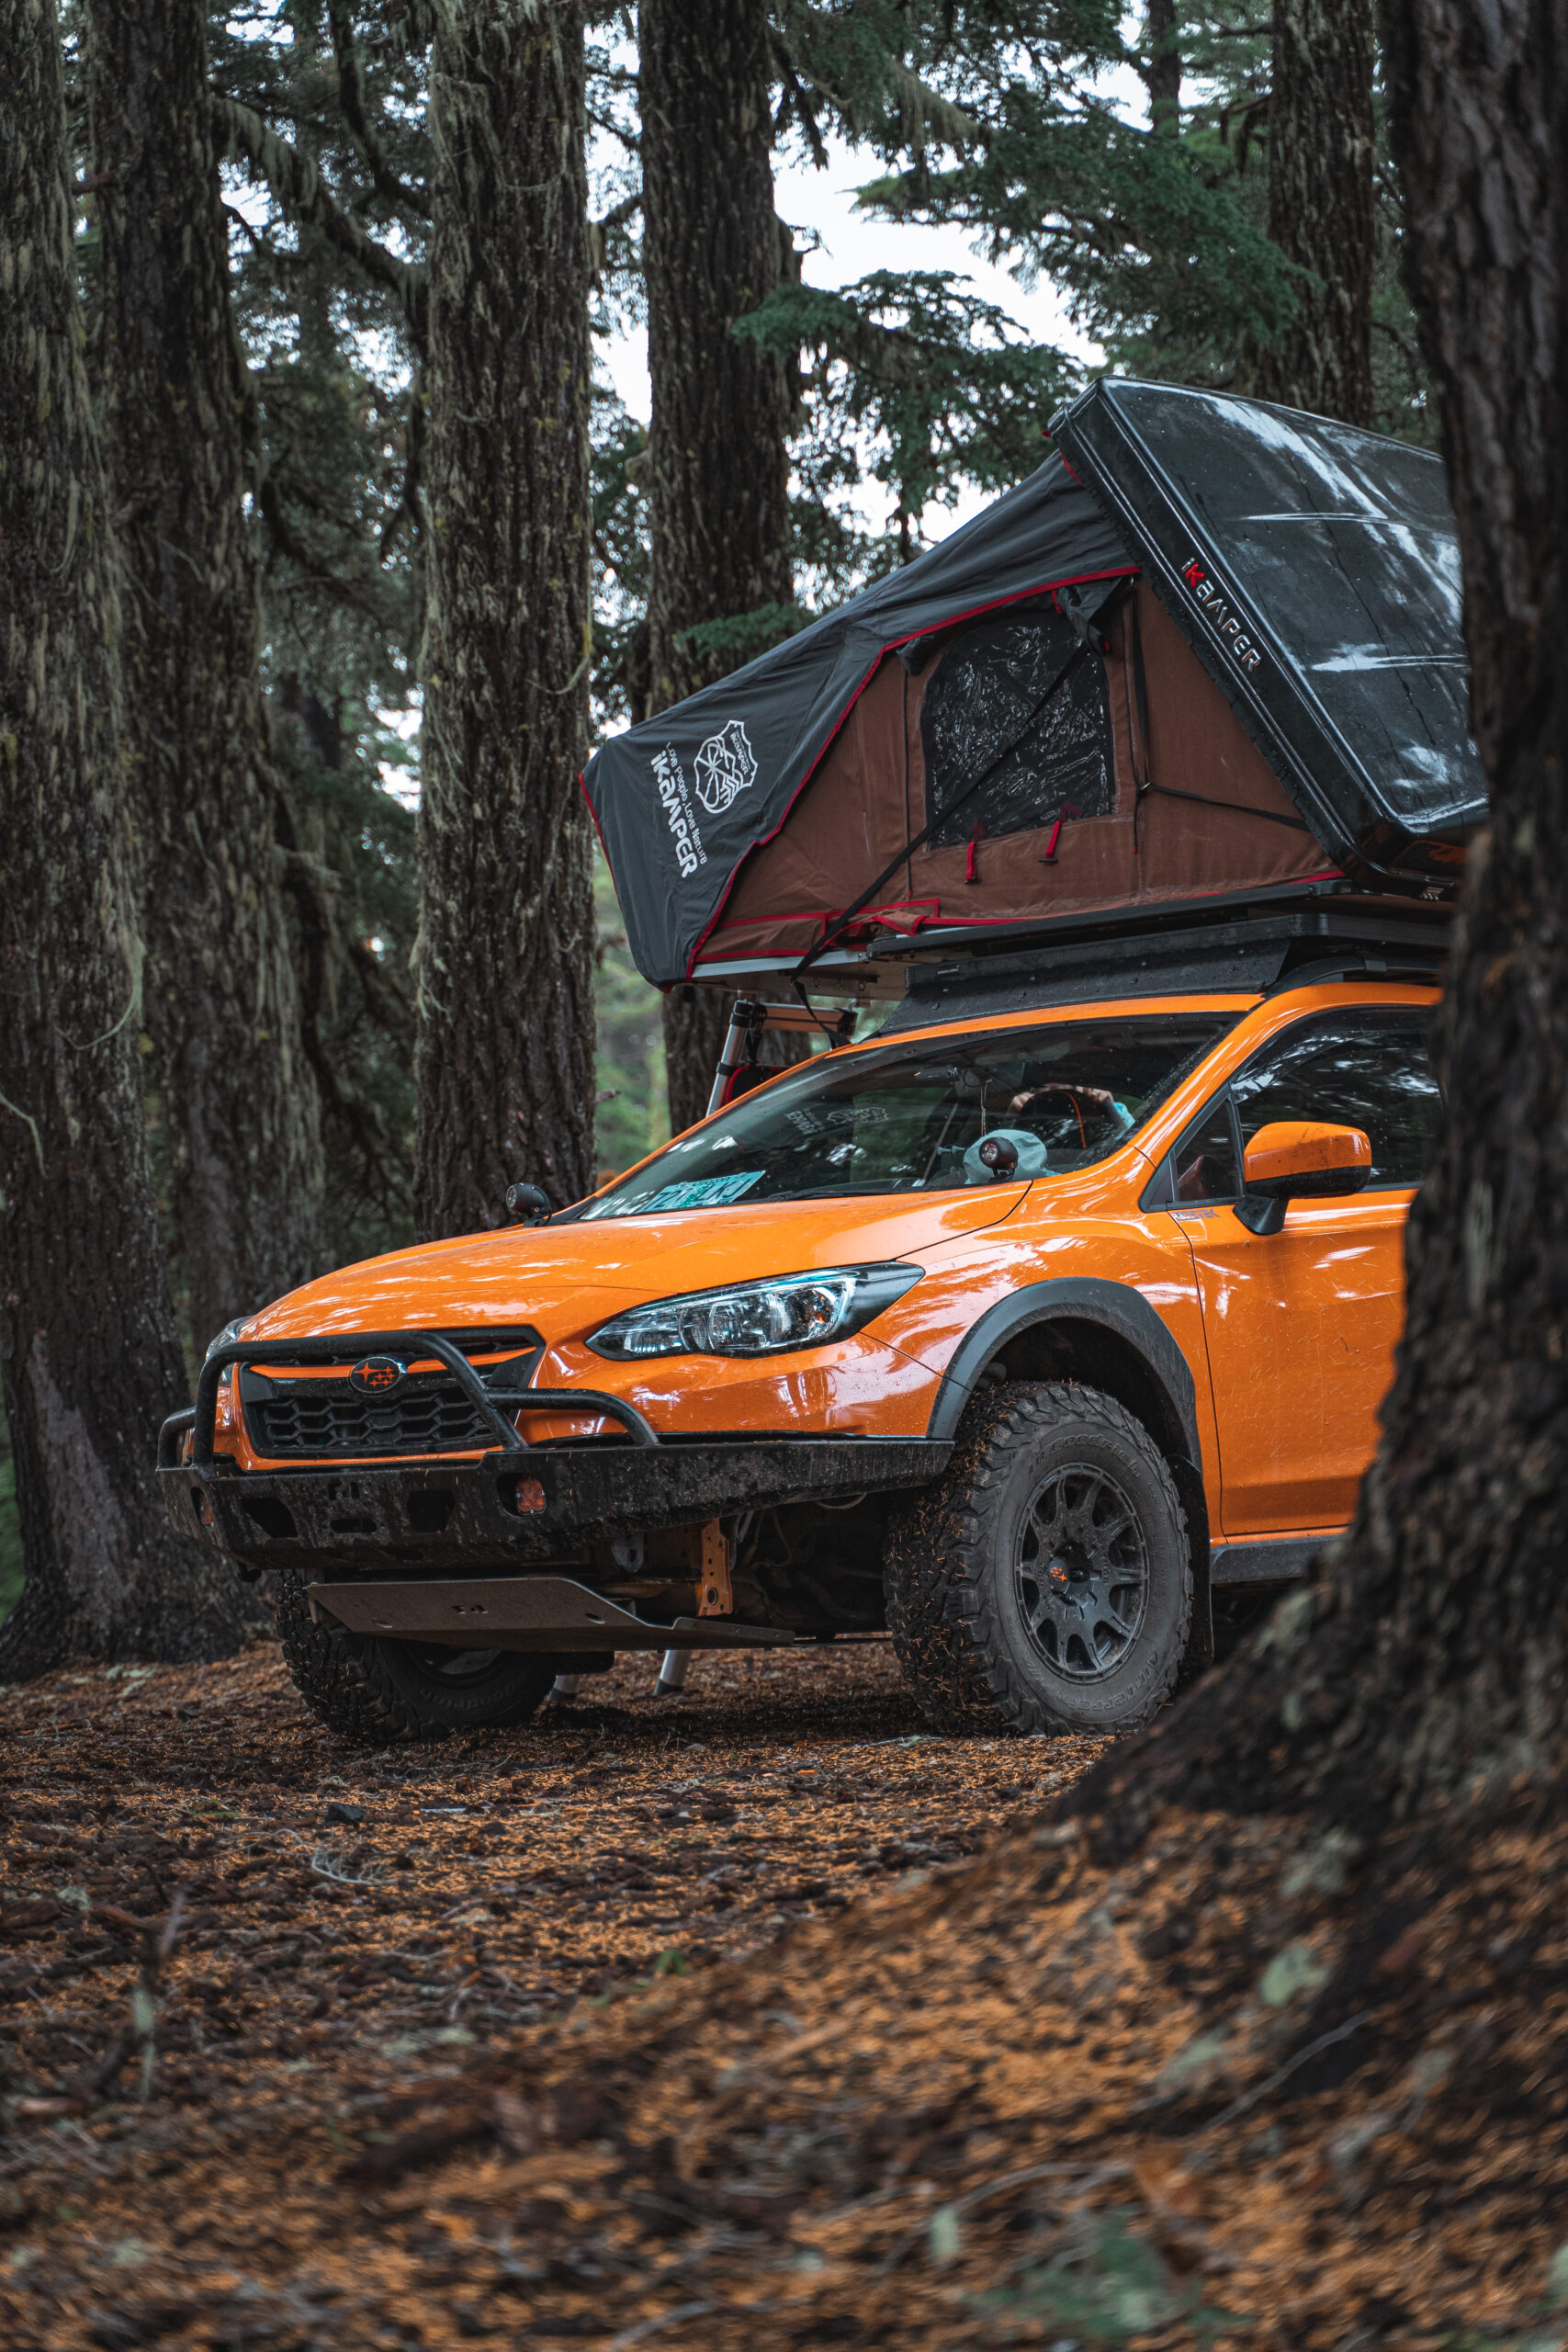 lifted subaru crosstrek with a lift kit and off road wheels